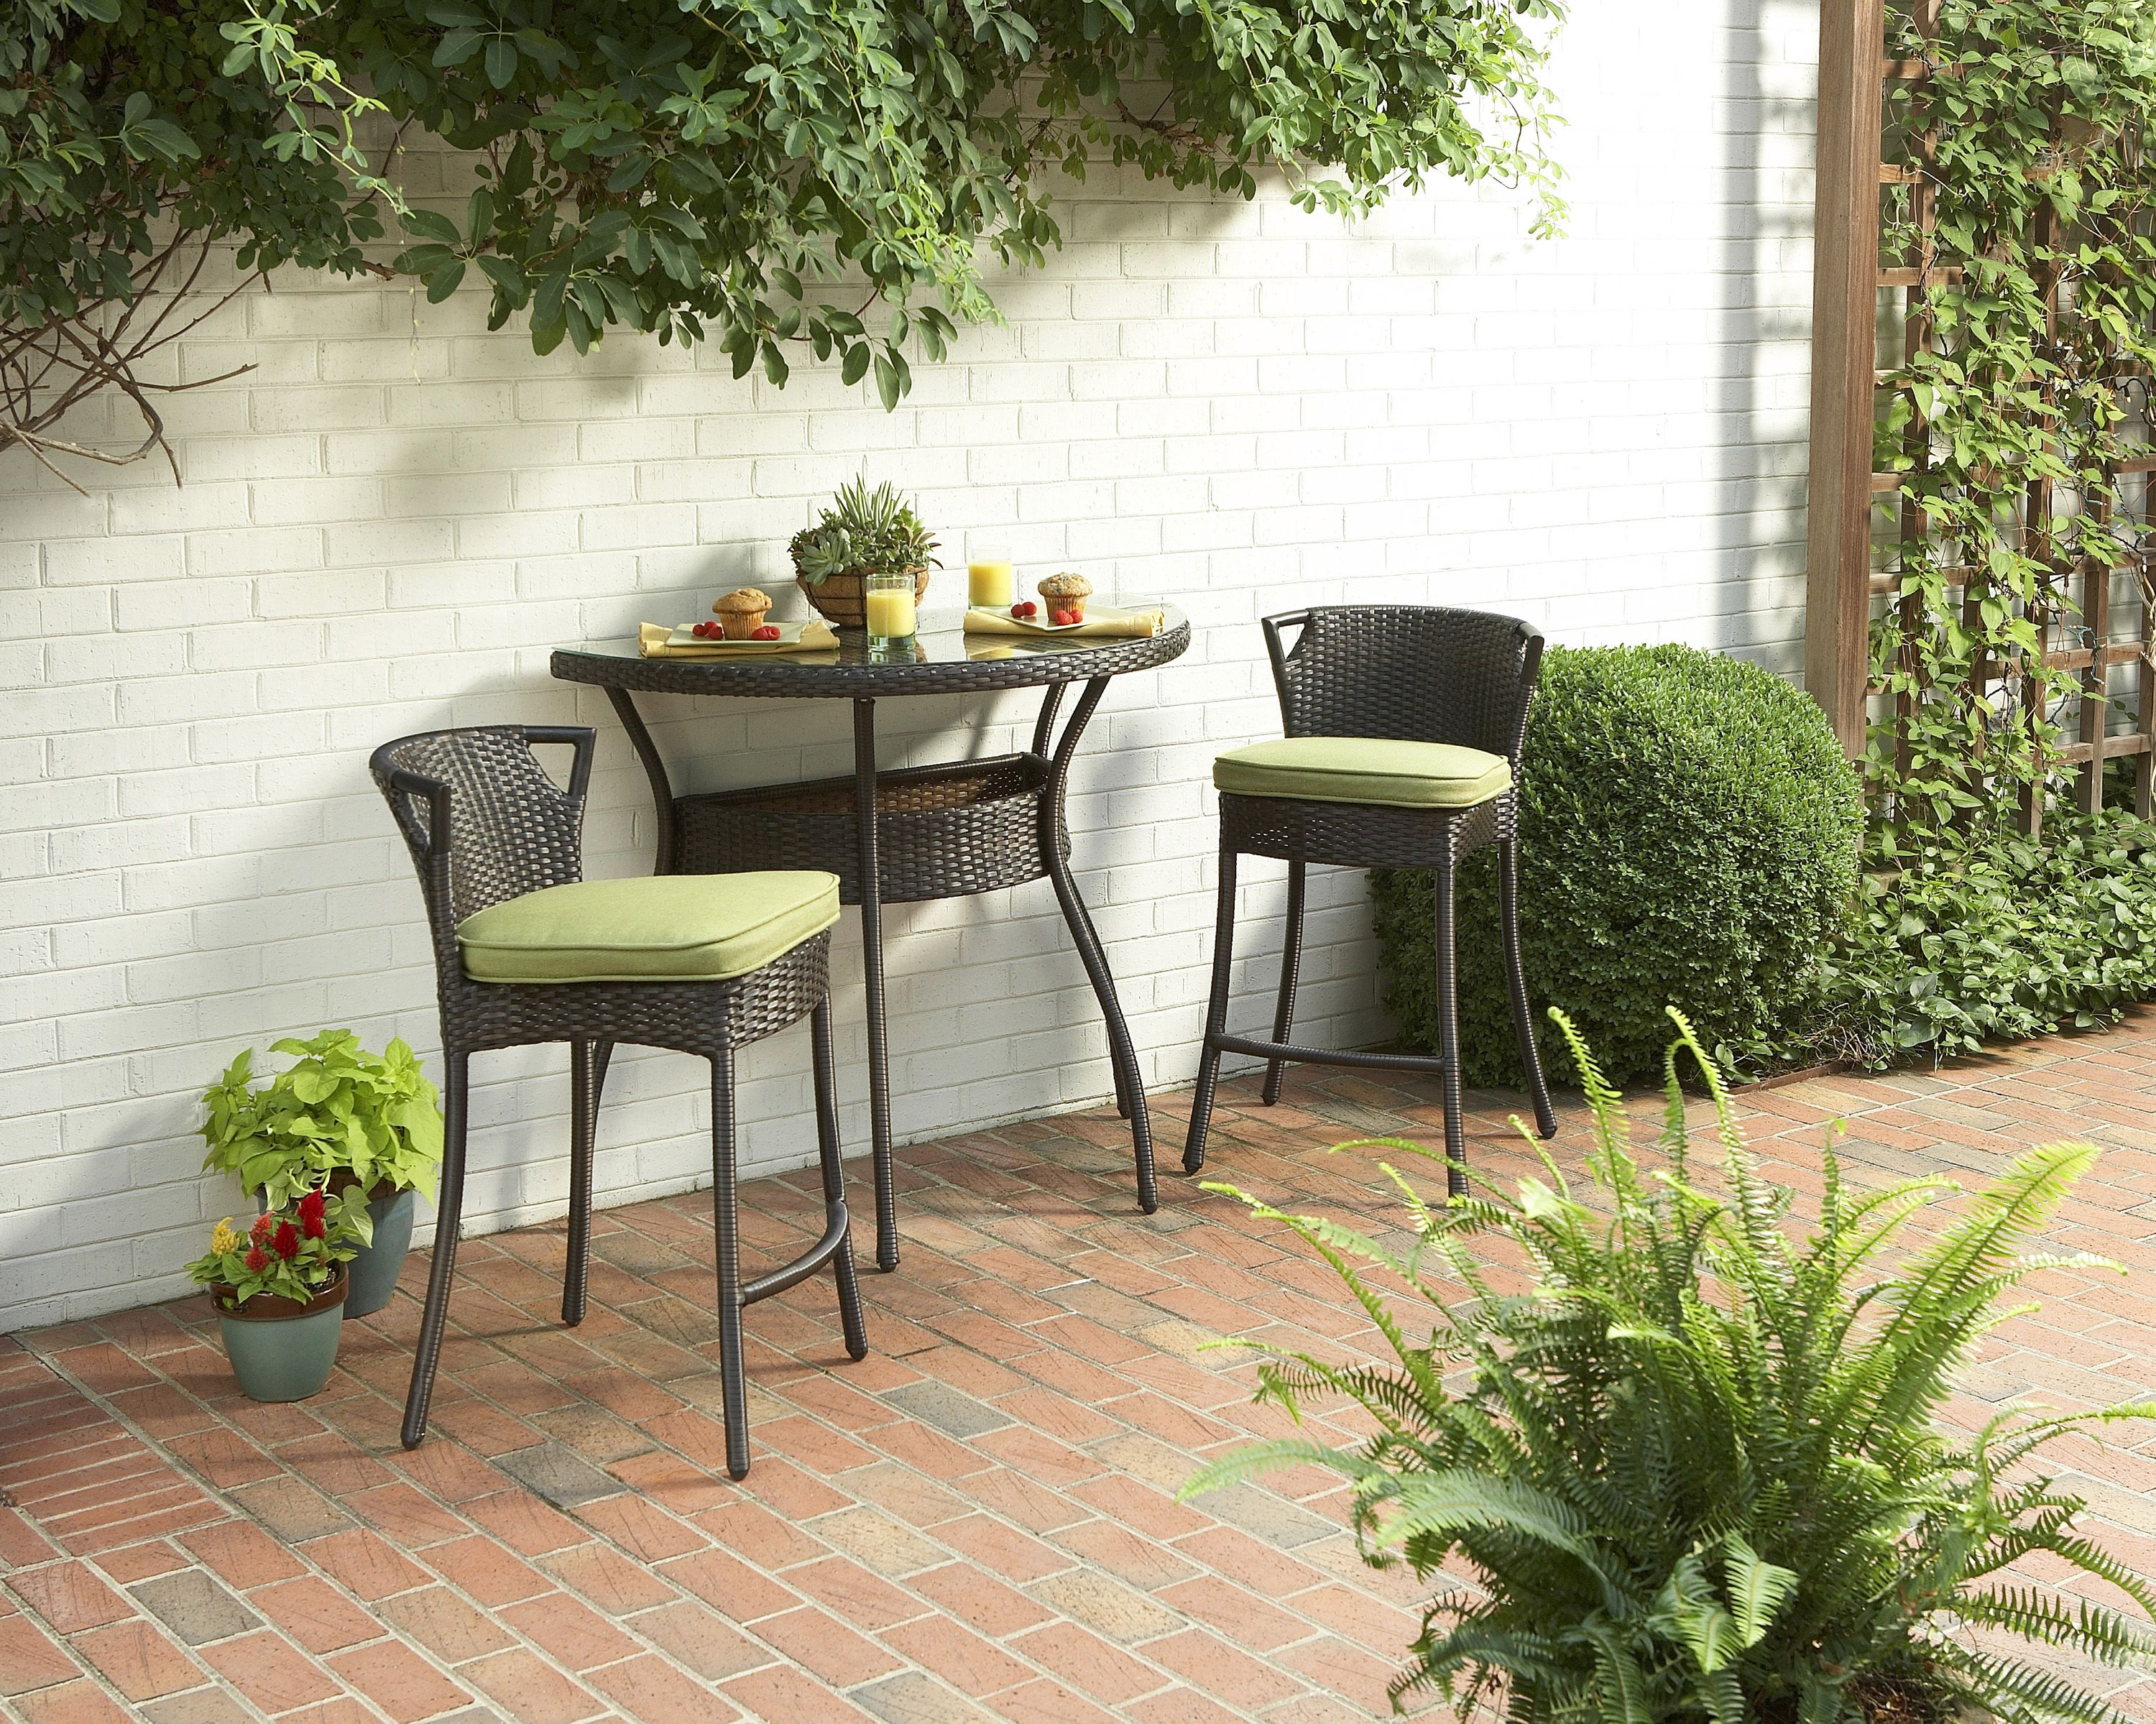 Dreaming about brunch on the allen roth Mayers Bistro set